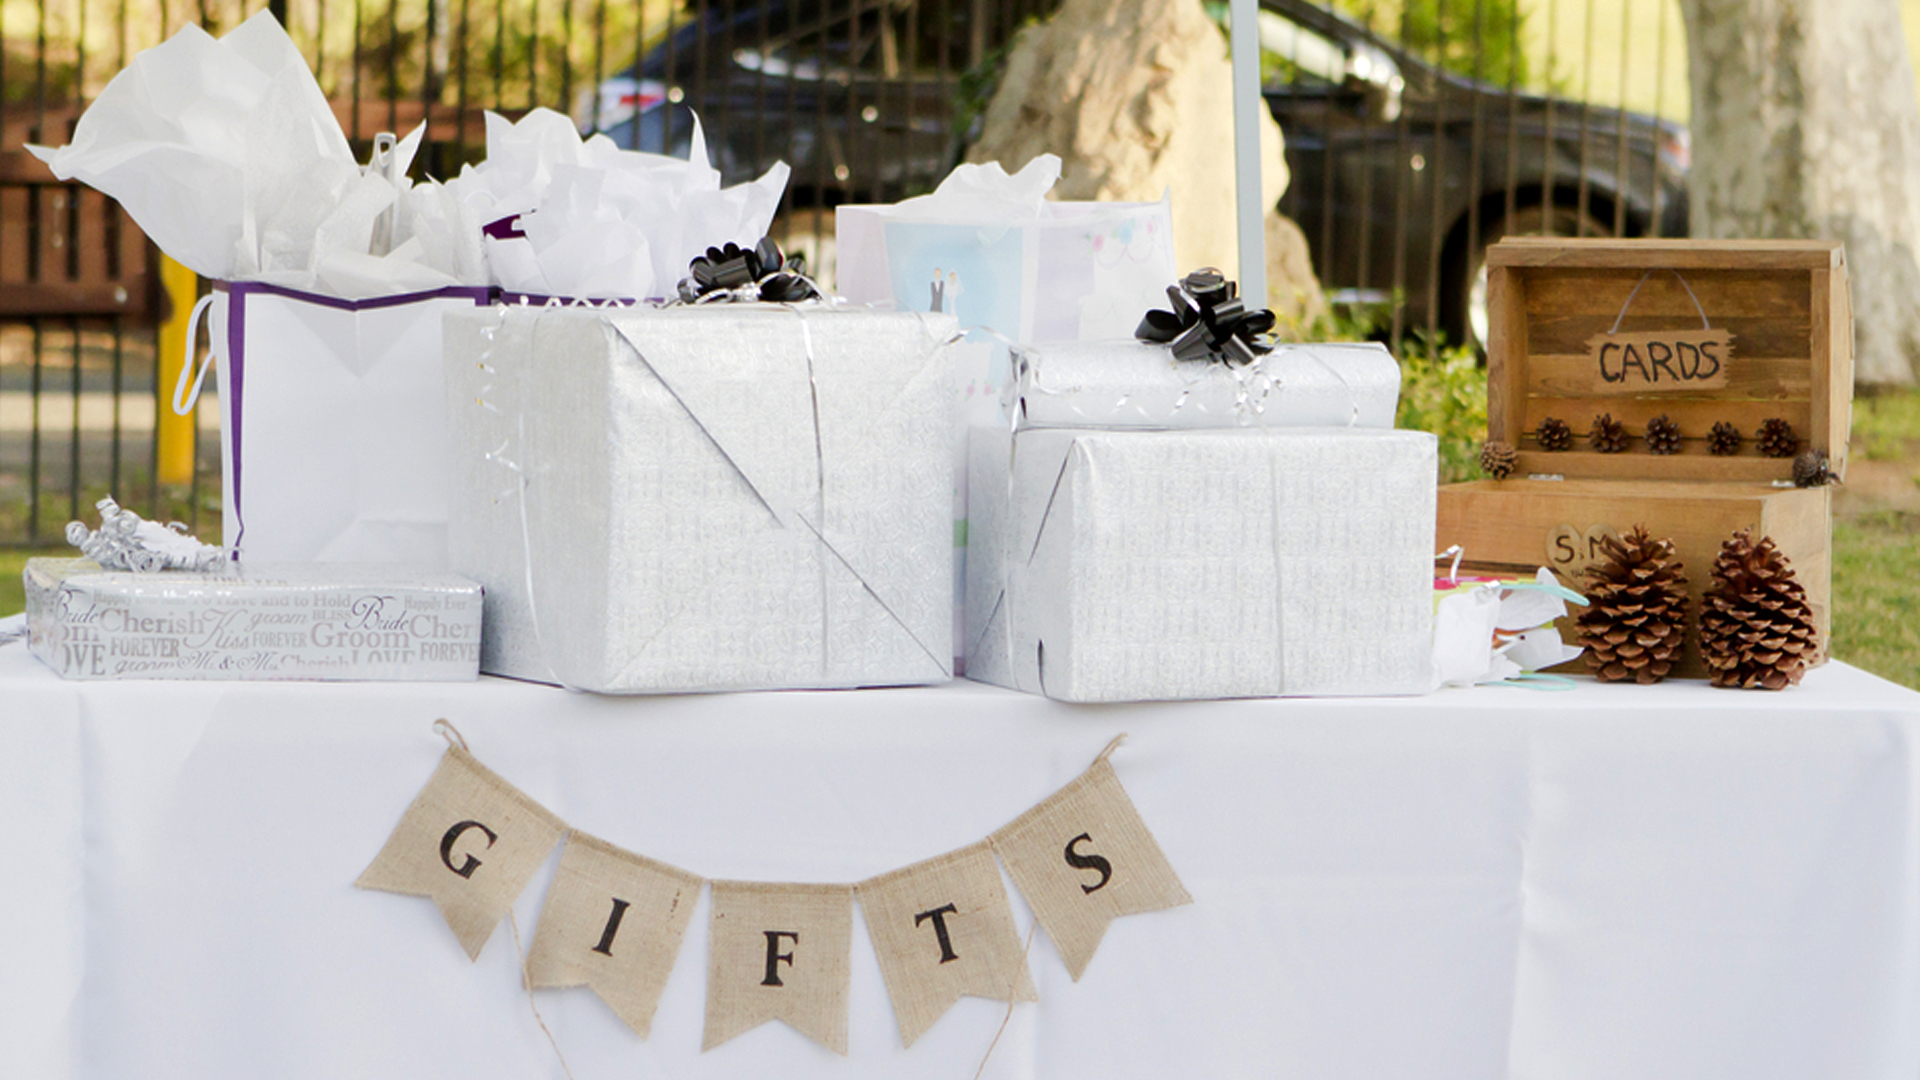 Gifts For Wedding Planning: 9 Things We Wish We'd Known Before Registering For Wedding